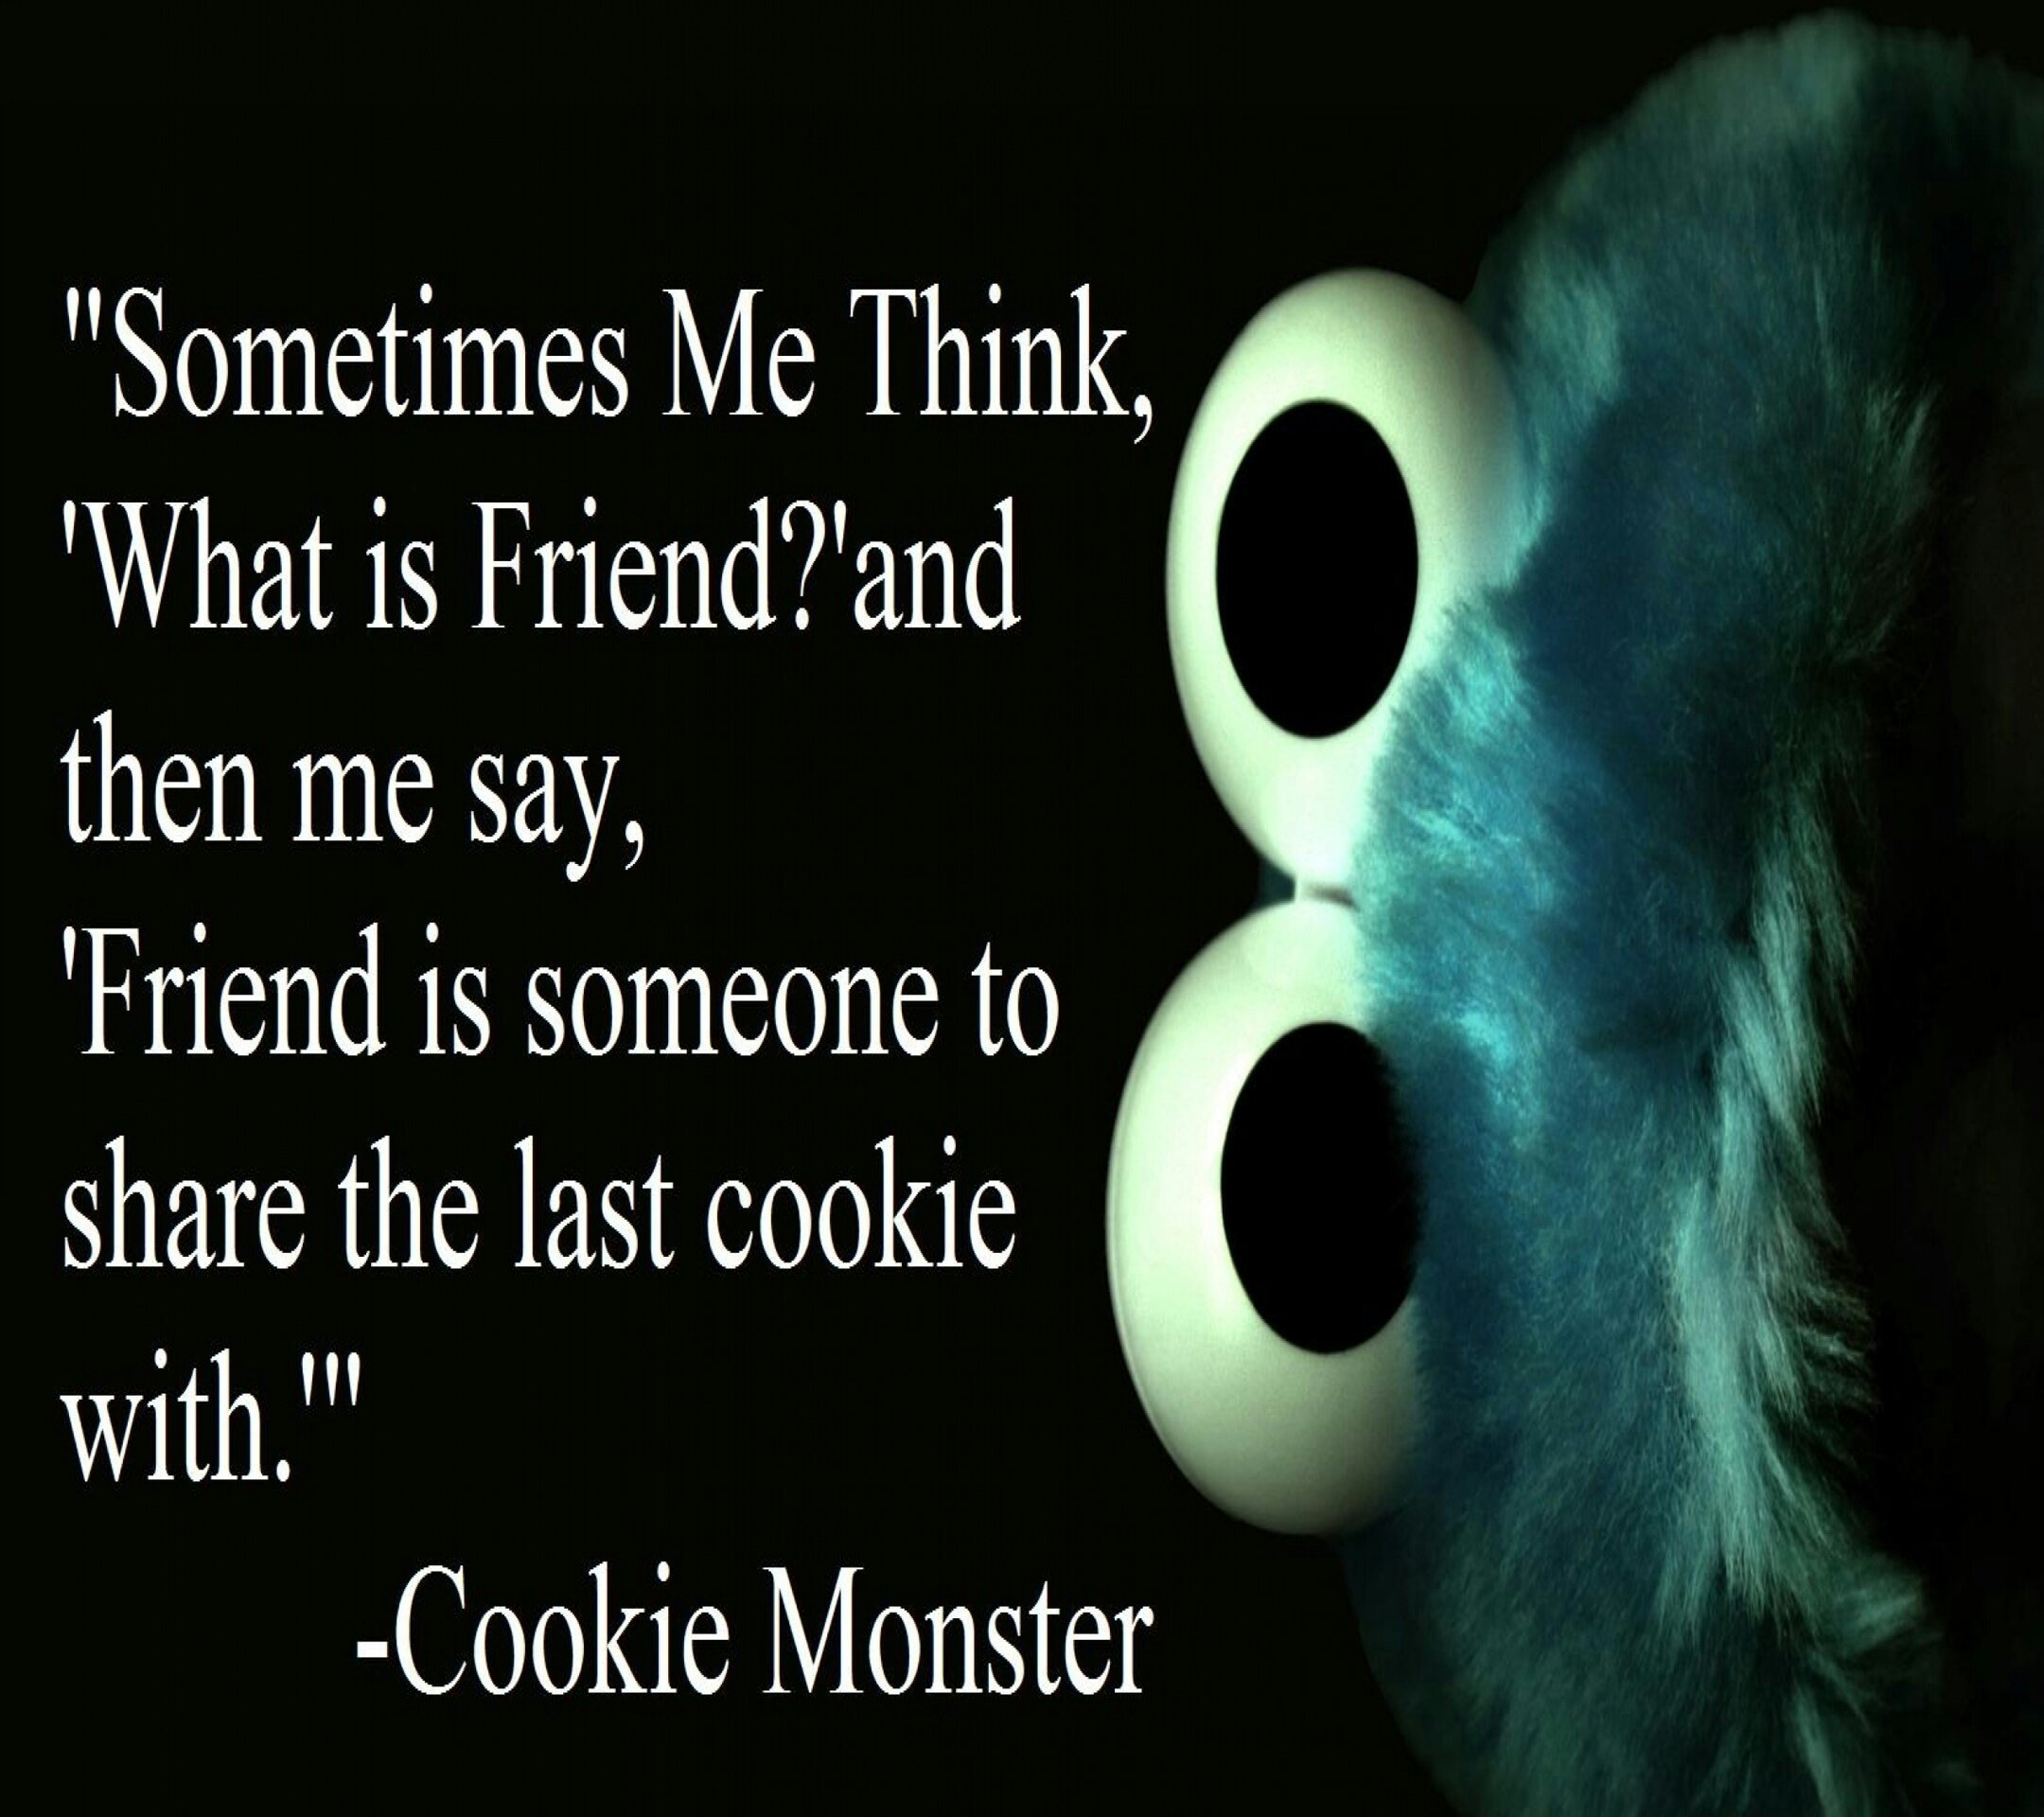 cookie monster quotes - 612×612